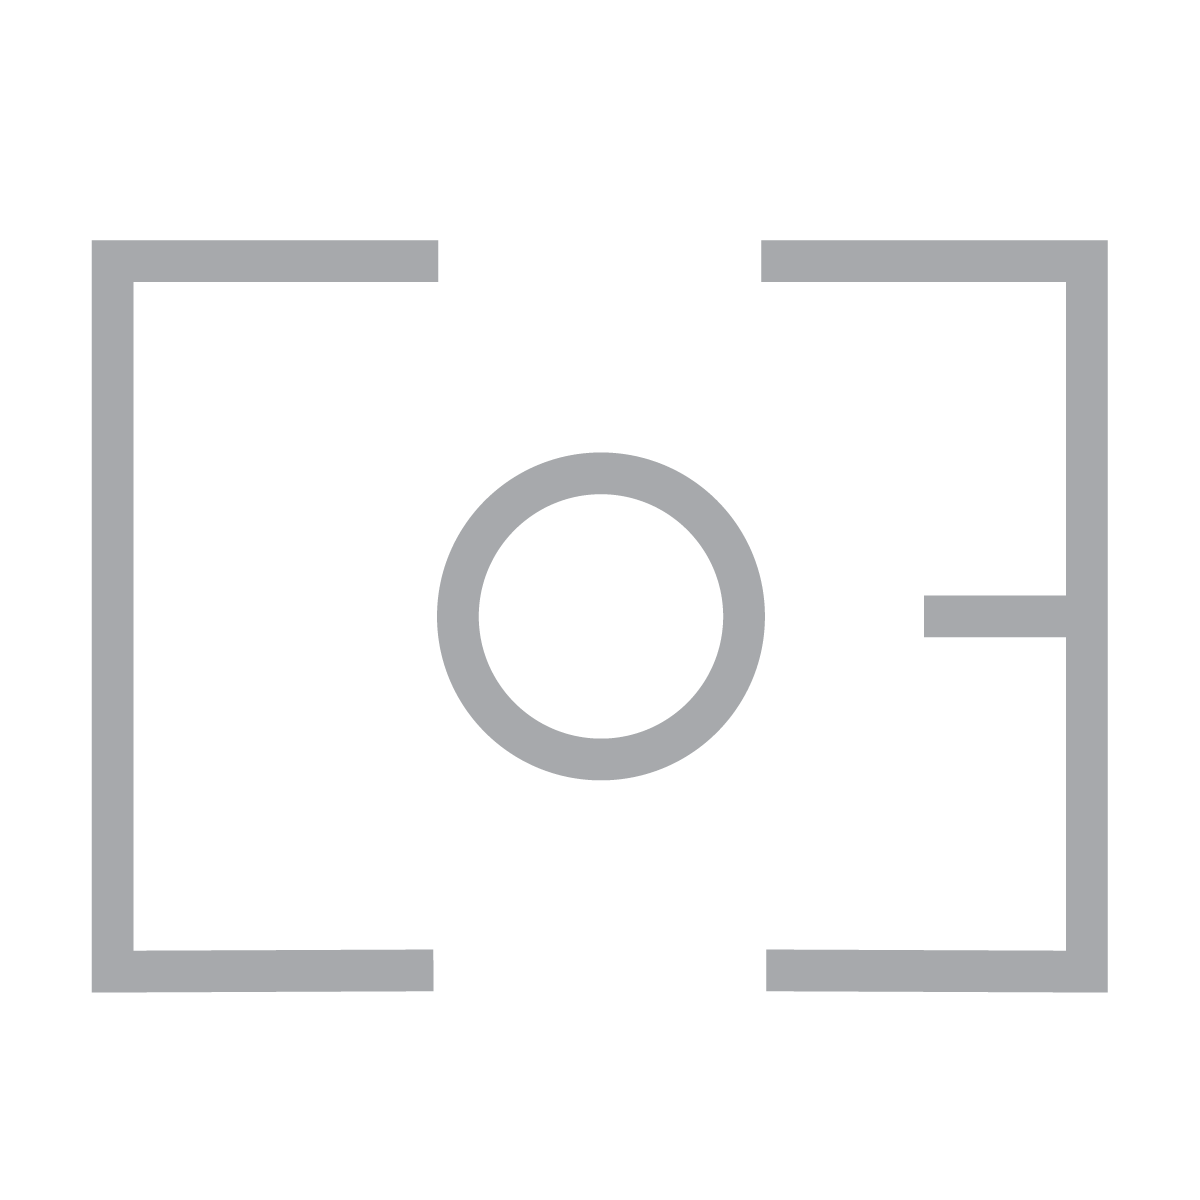 CEP.small.logo.grey.png